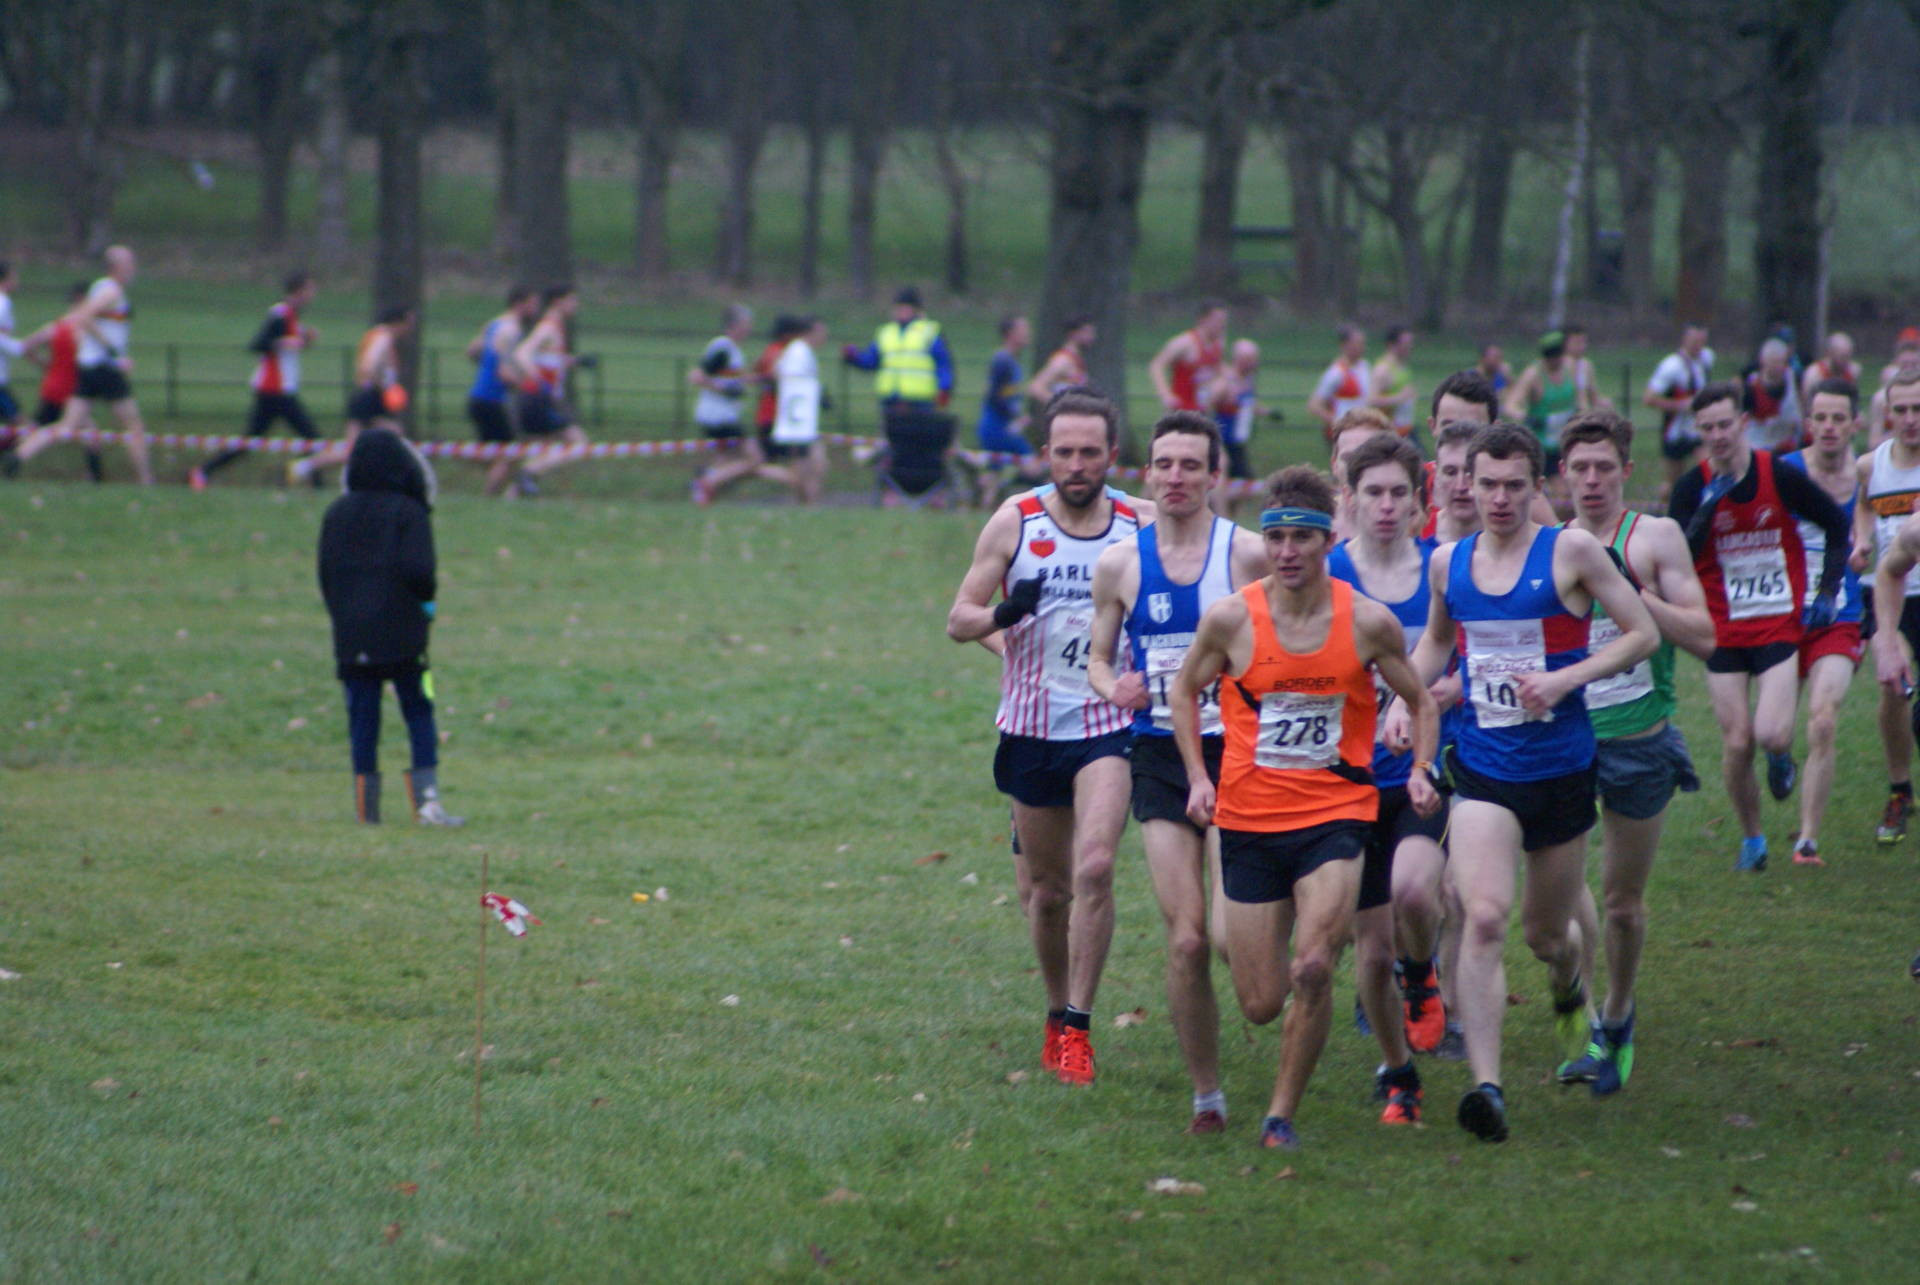 Team Wins for U13G – U15B – Men's Vets at Towneley Hall – Thompsons on Tour in the Blue & White – Katie & Joe have strong runs for University XC